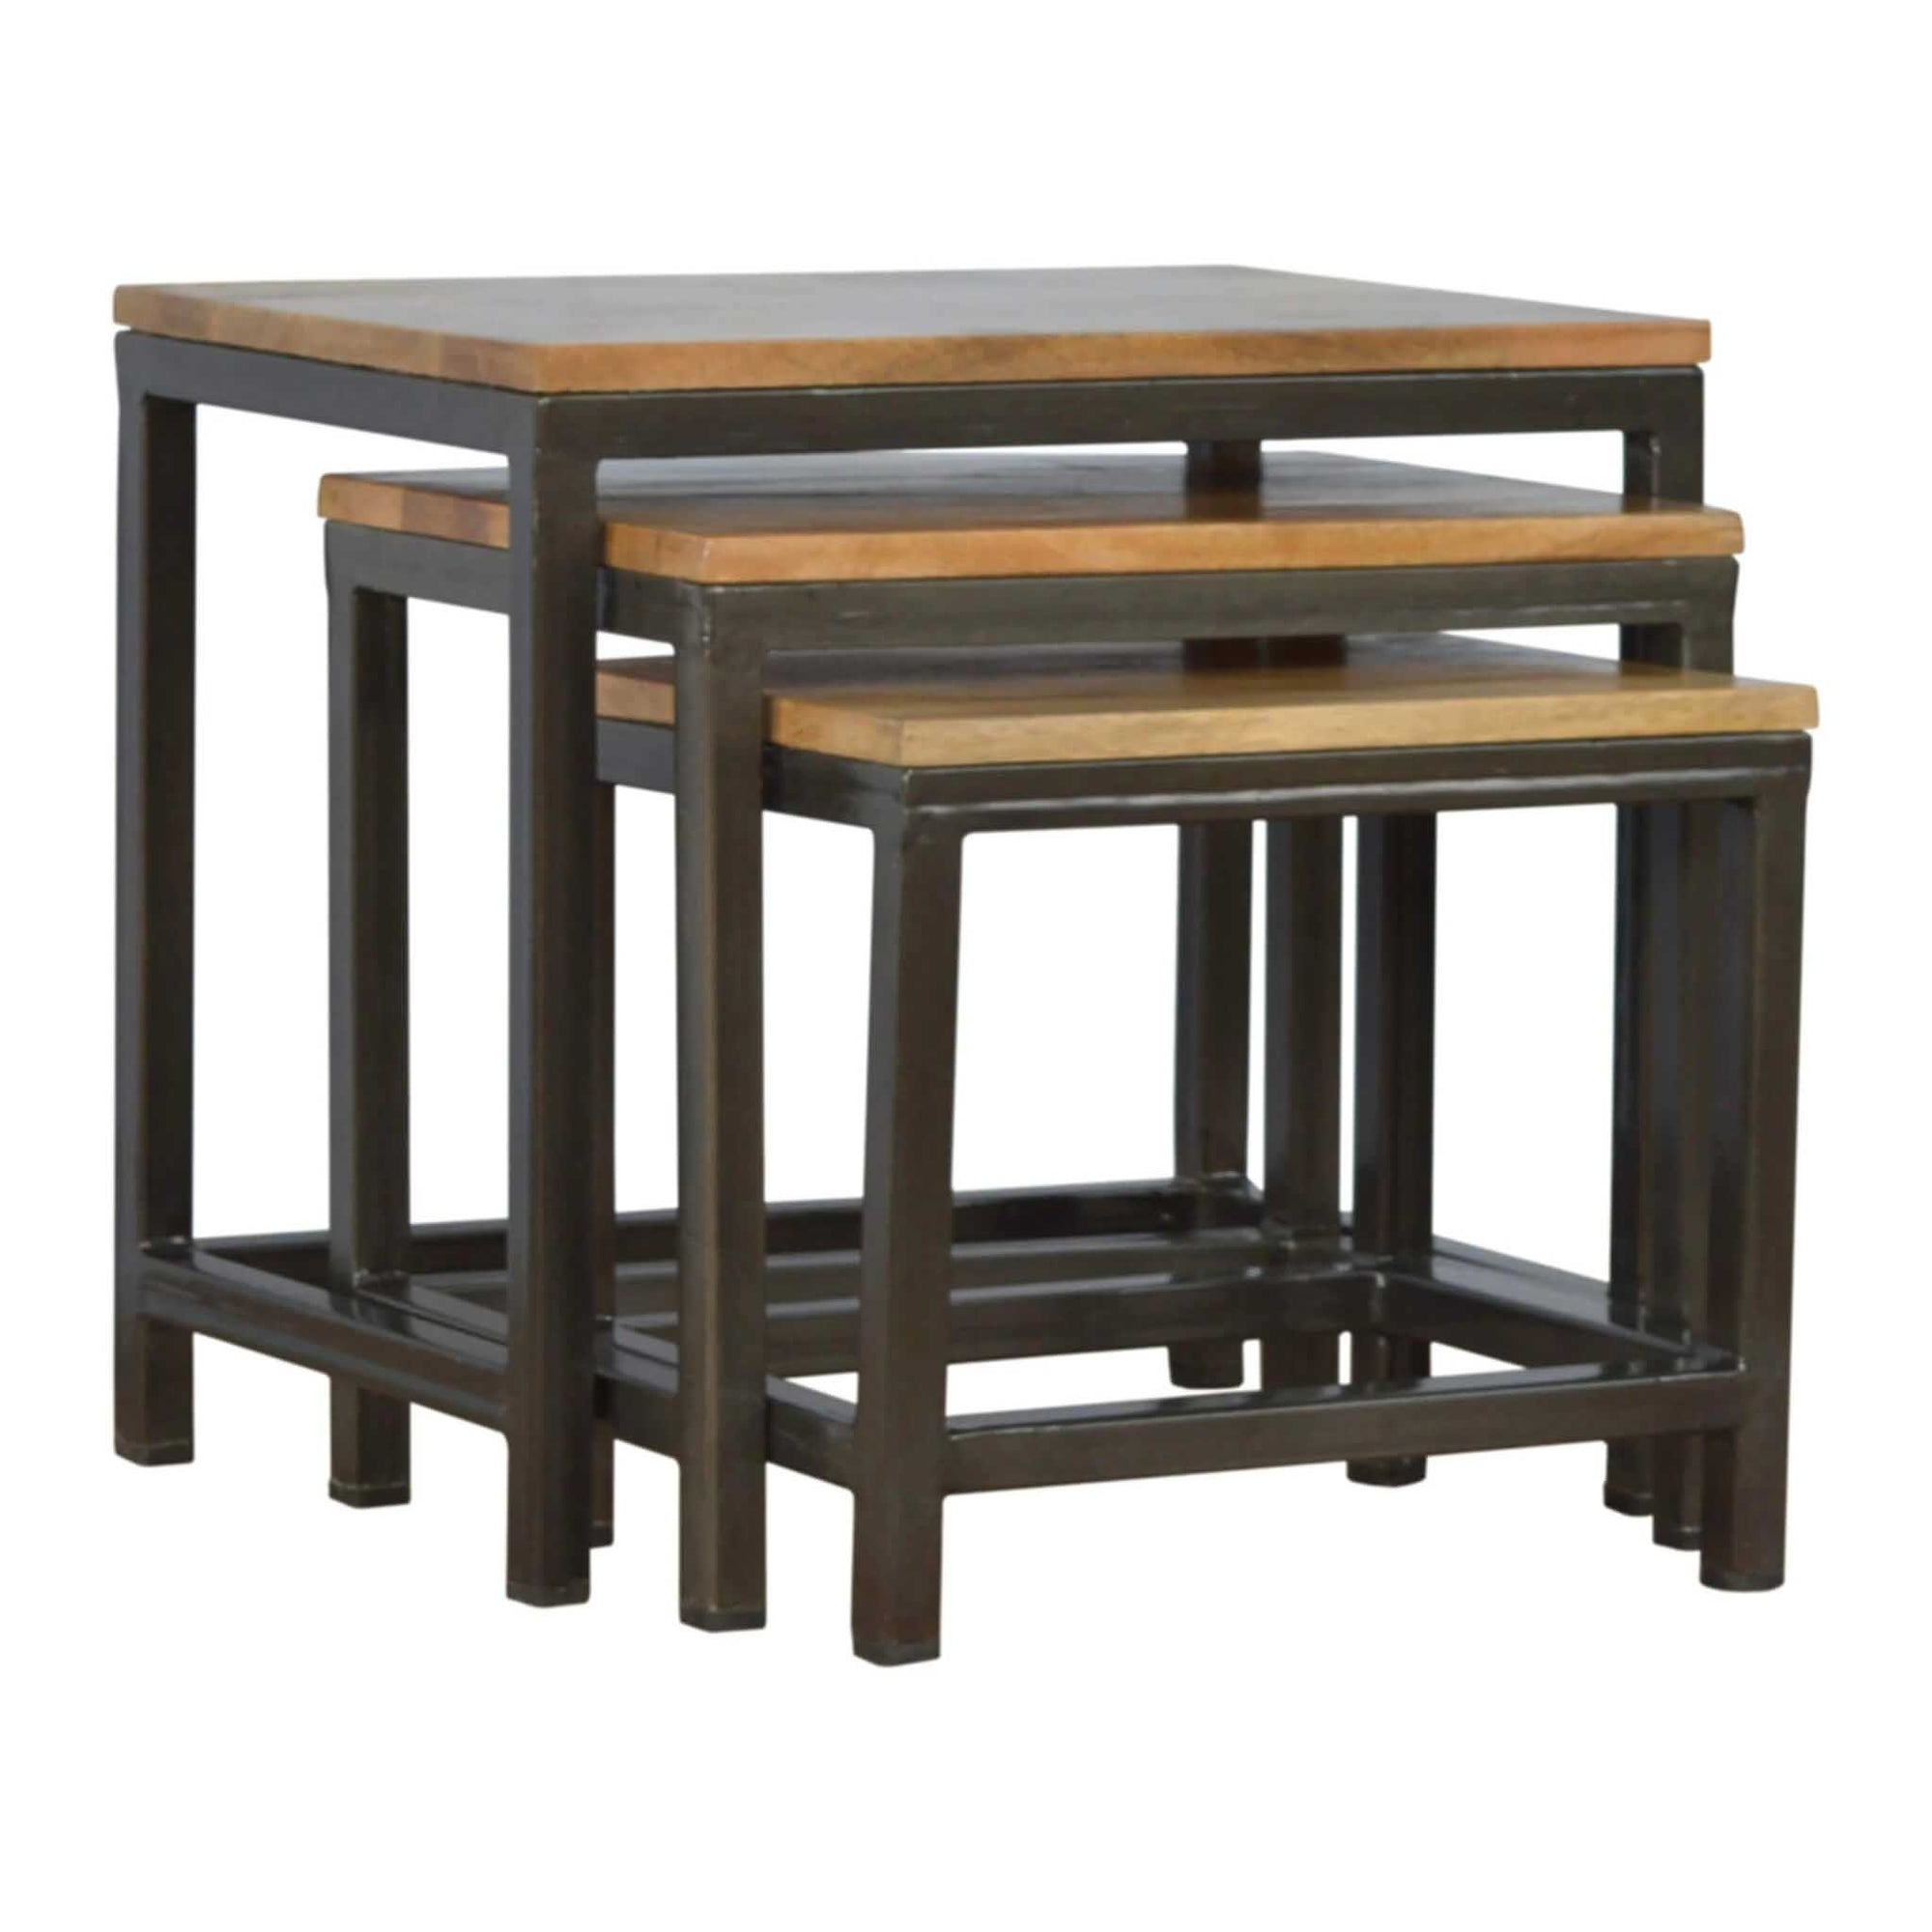 Artisan Nest of Tables with Iron Base by Roseland Furniture